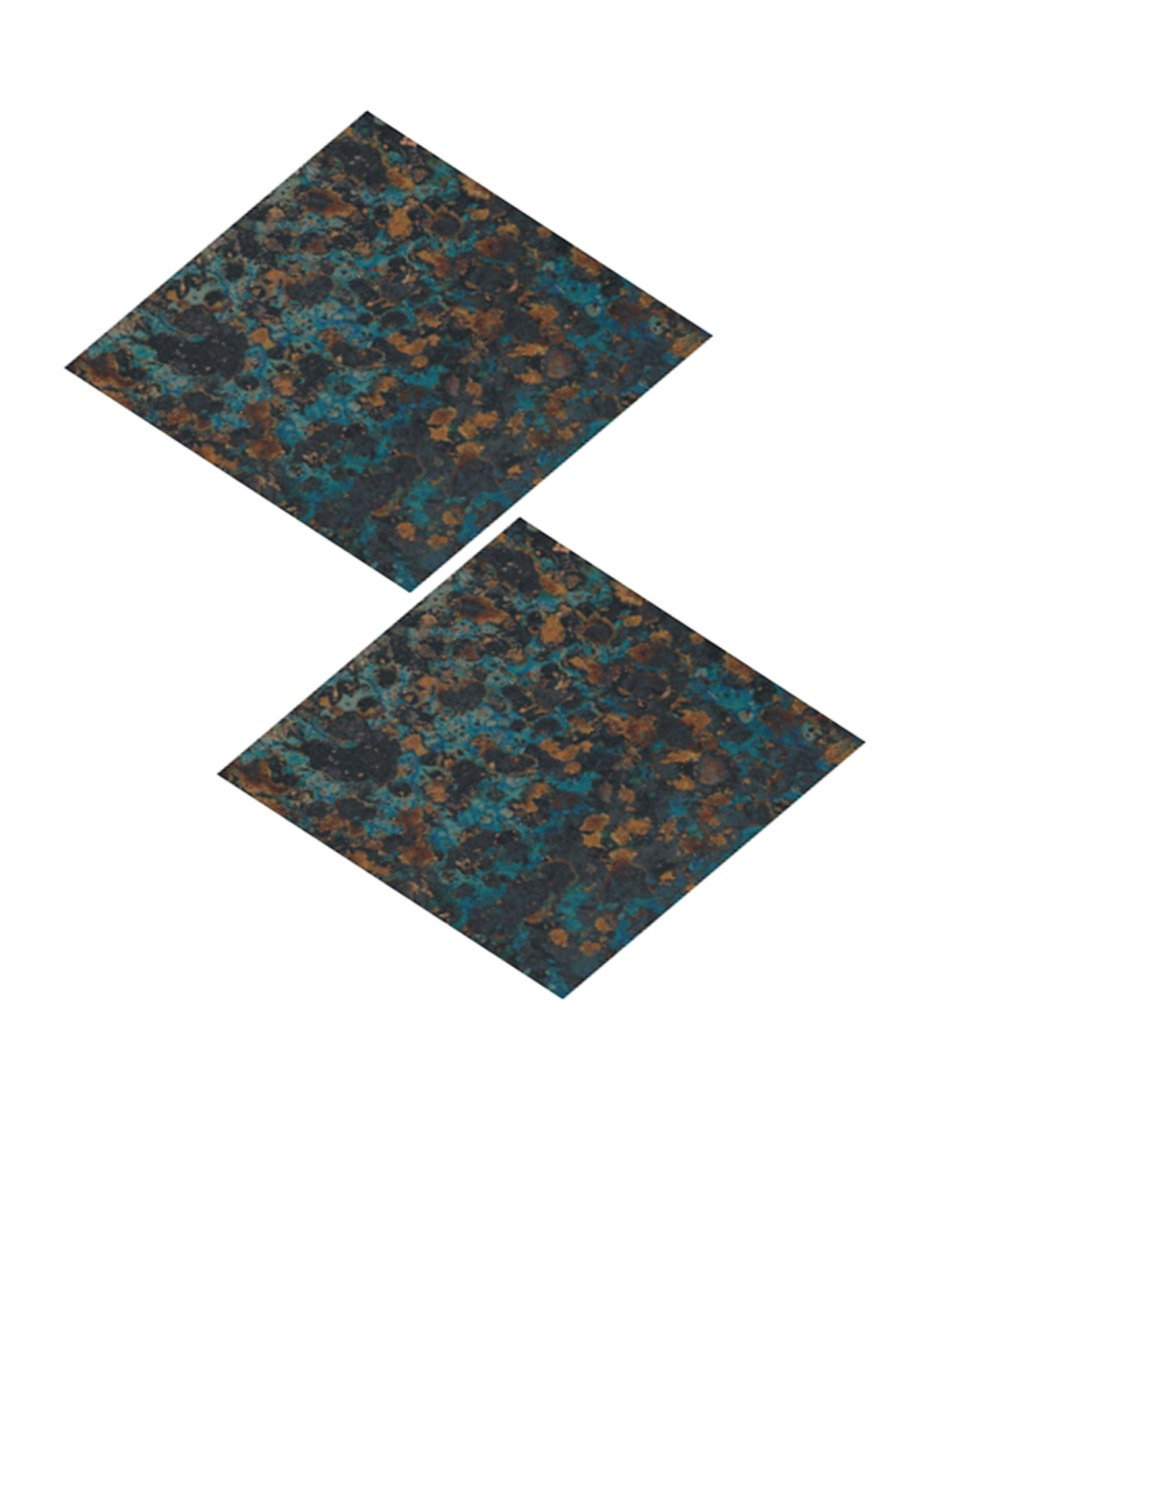 Blue And Bronze Copper Sheet Metal 3x3in Wonderfully